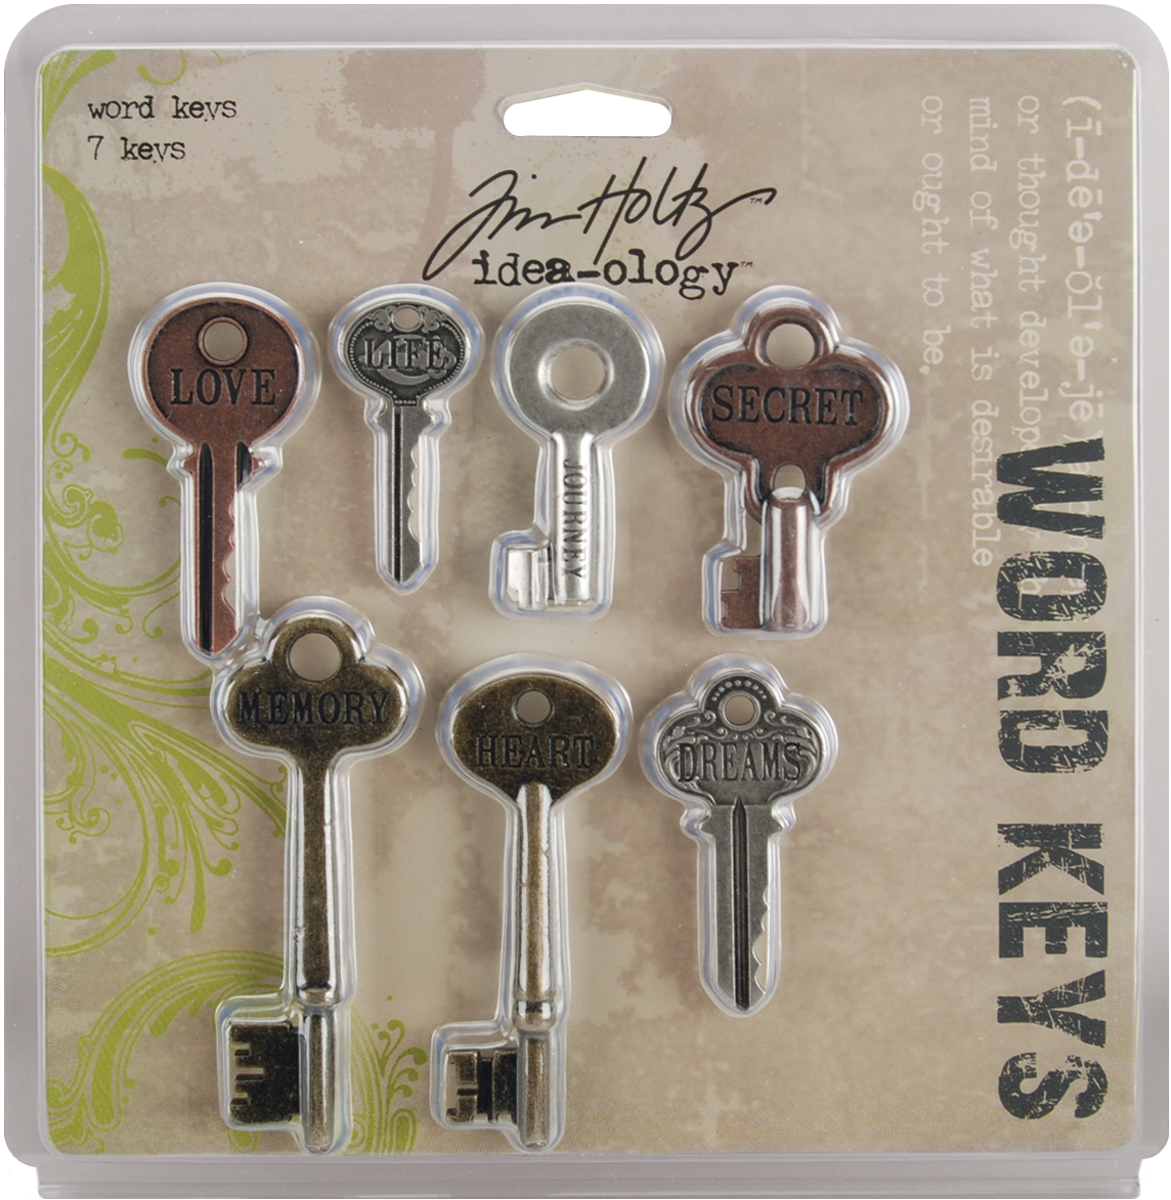 Idea-Ology Metal Word Keys 1.5 To 3 7/Pkg-Antique Nickel, Brass & Copper